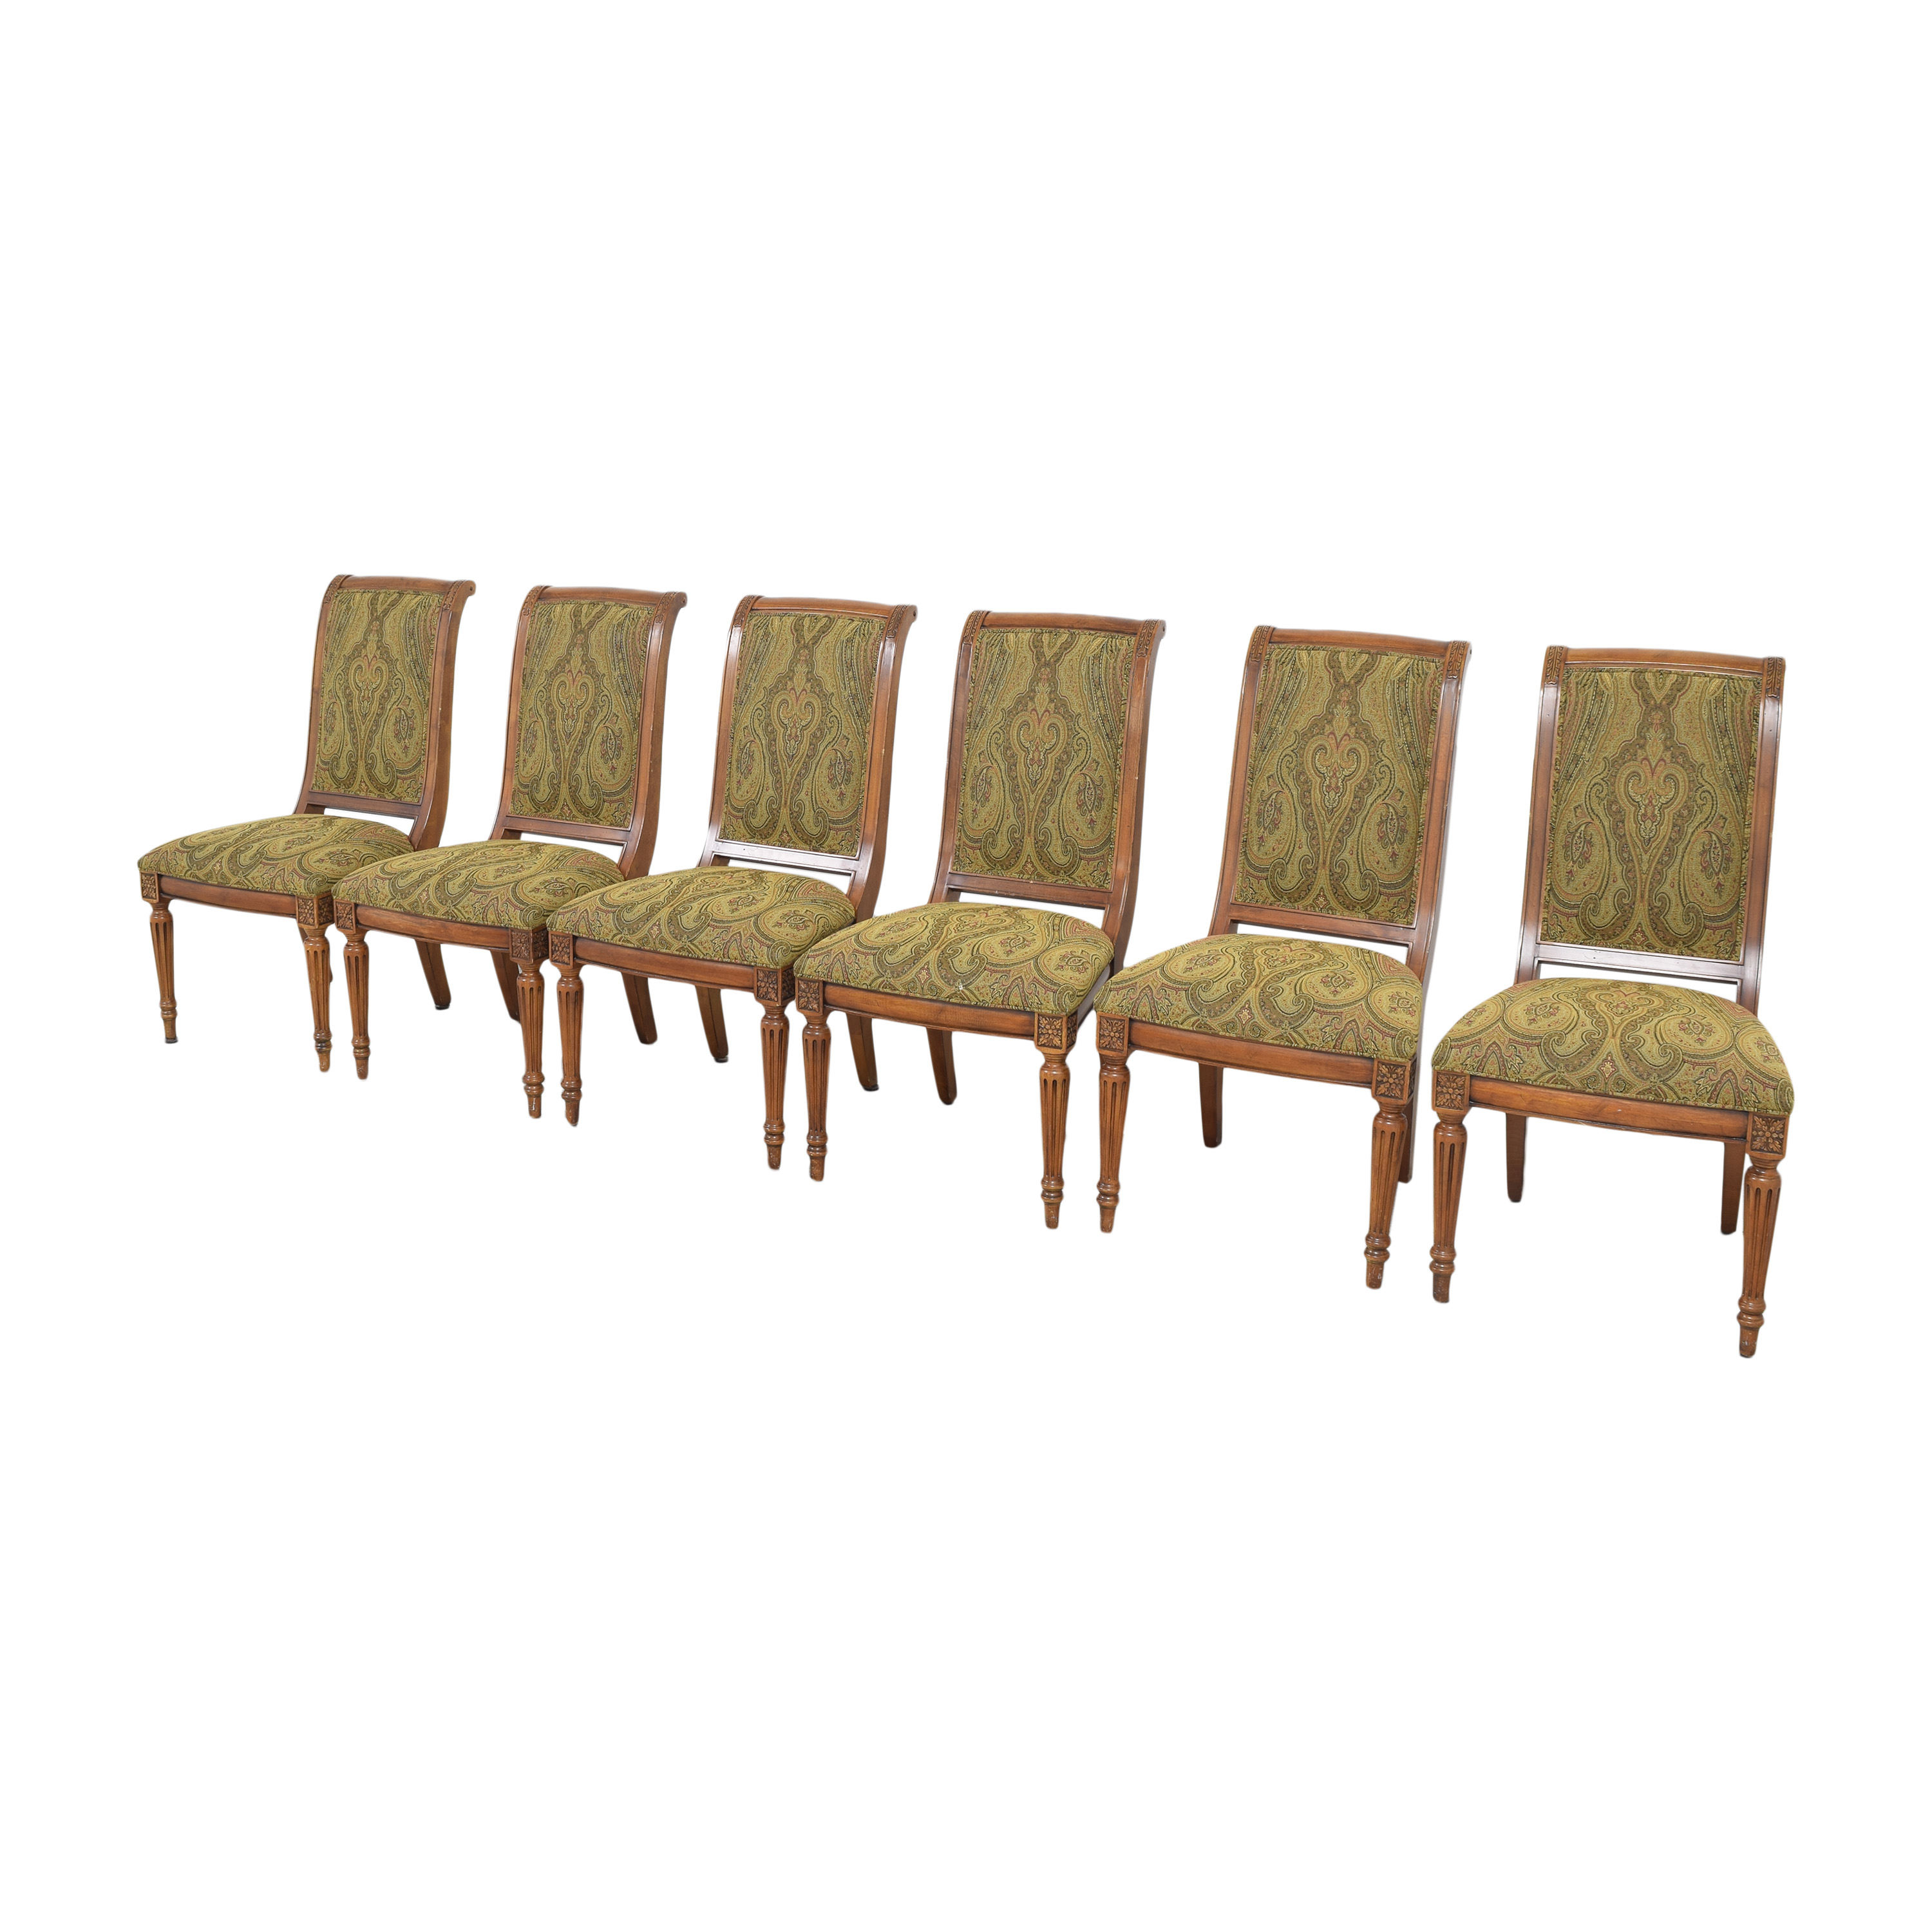 buy Ethan Allen Adison Dining Side Chairs Ethan Allen Dining Chairs